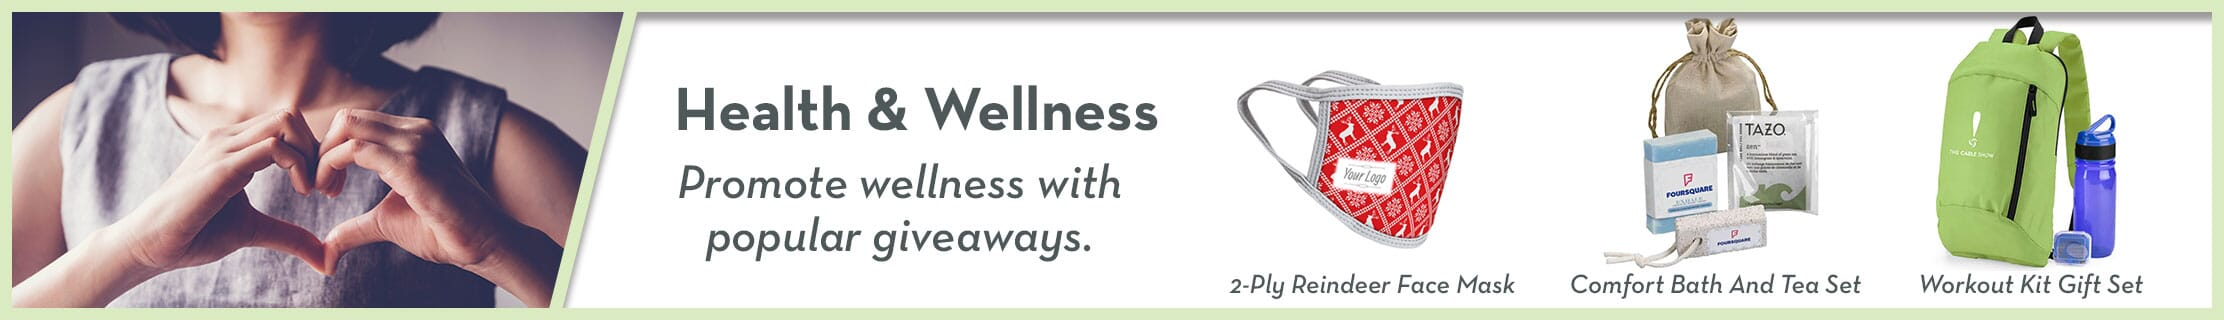 Health and Wellness Promos